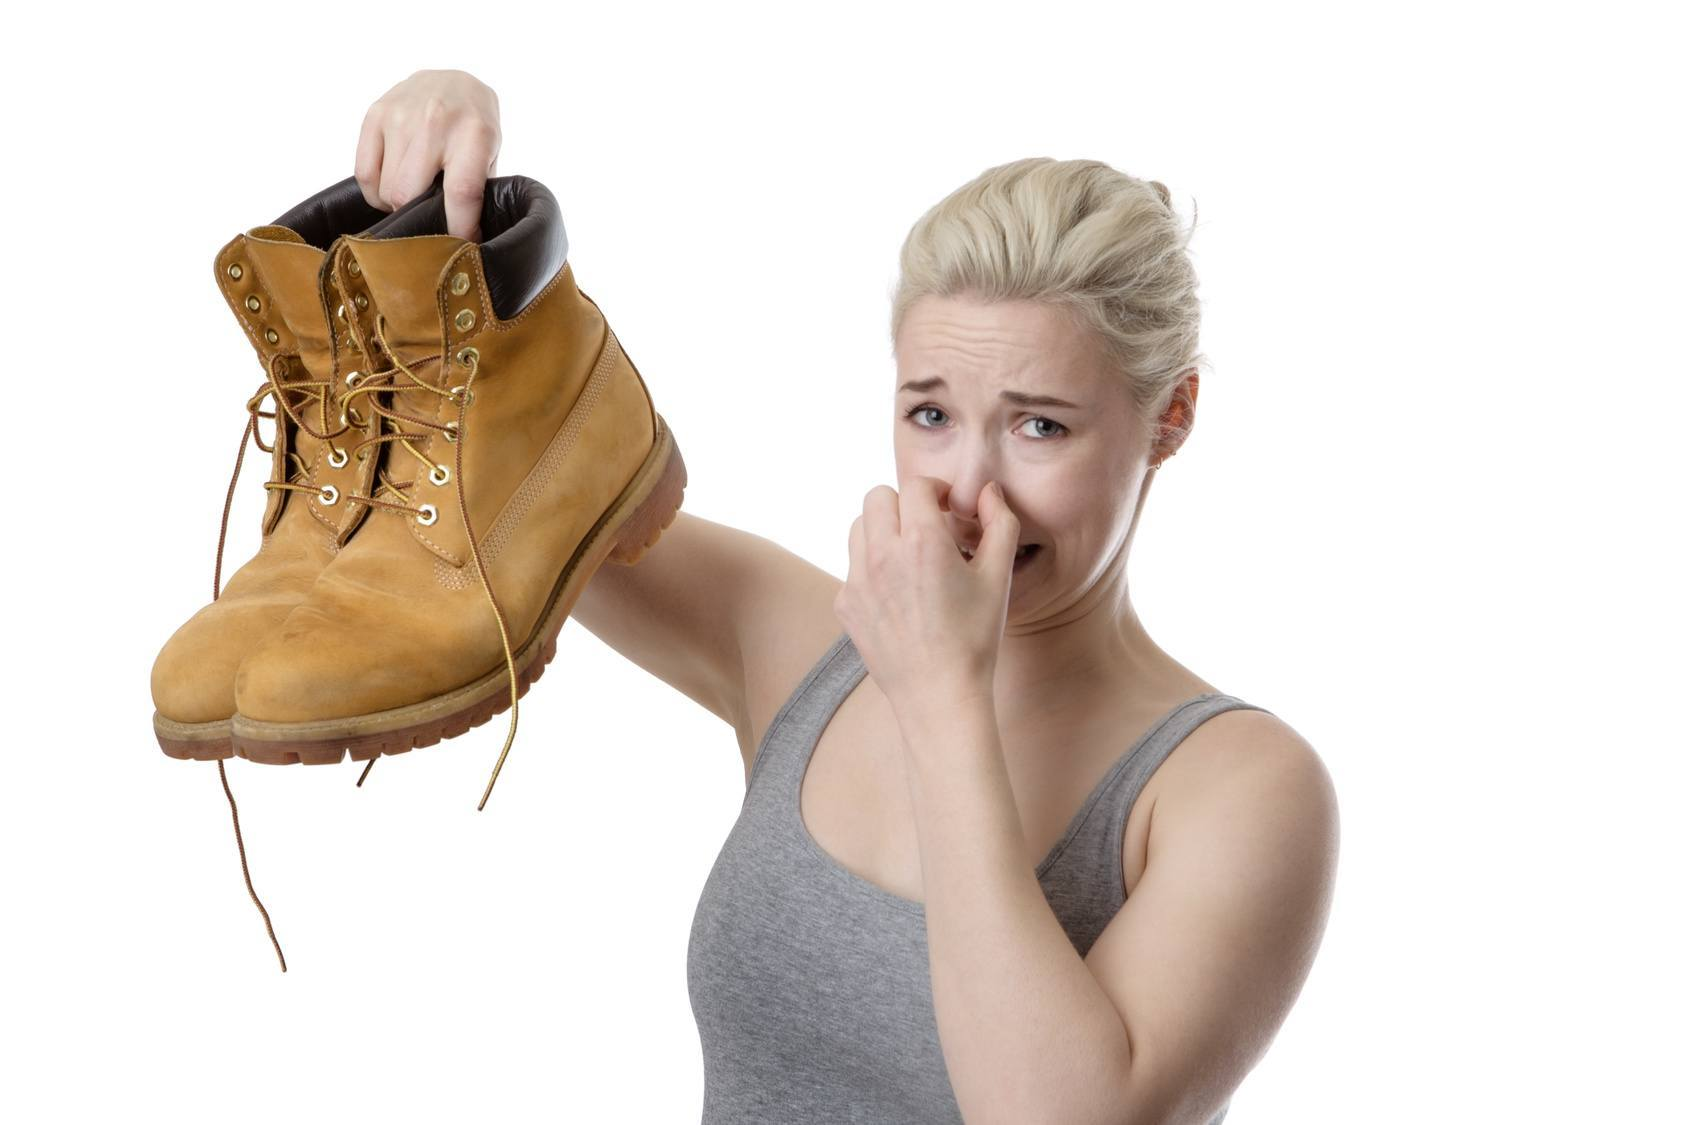 Removing Odor From Boots Smelly Work Boots